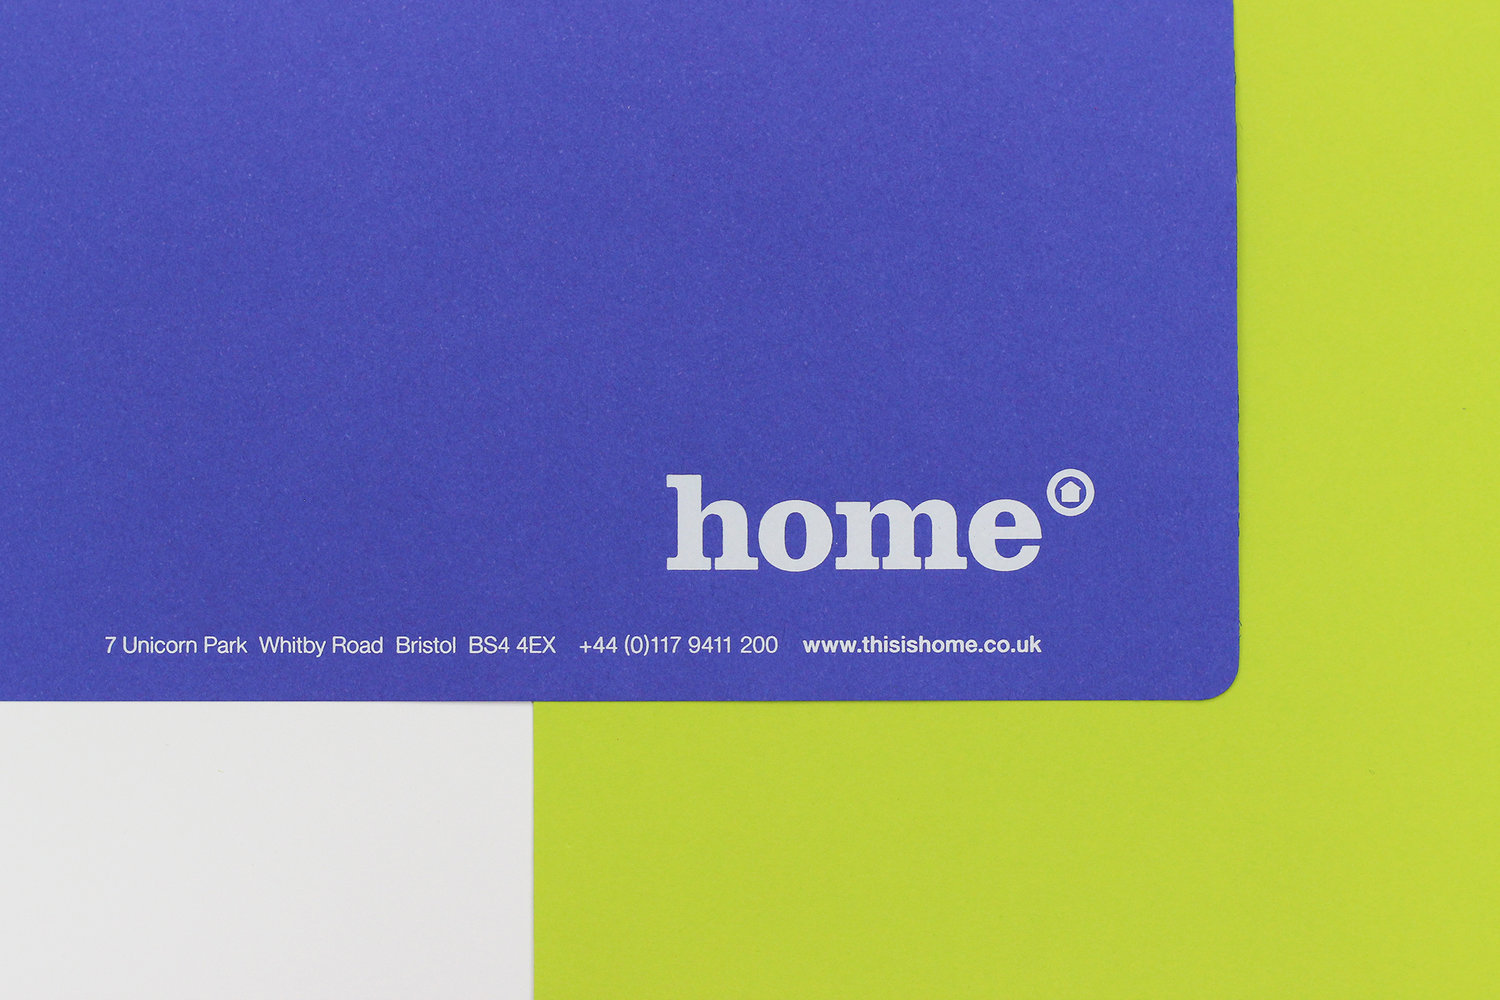 Home+stationery_shoot_Alan+Clarke-Symonds_04.jpg